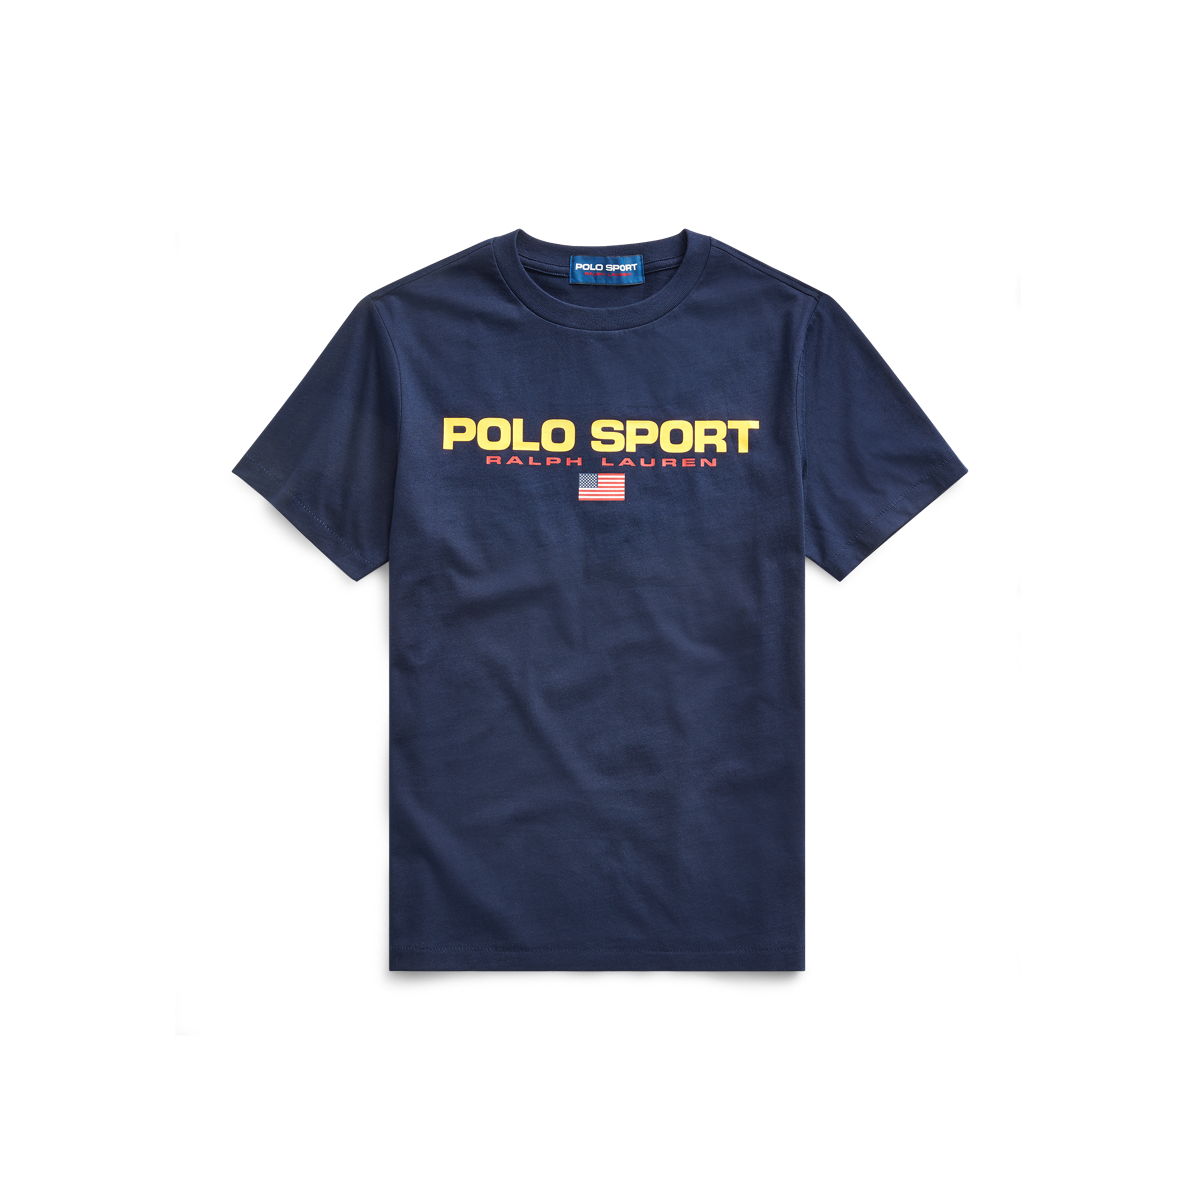 Polo Sport Jersey Sport Sport Jersey Cotton Polo Polo Cotton Cotton Tee Tee FJlcuK35T1